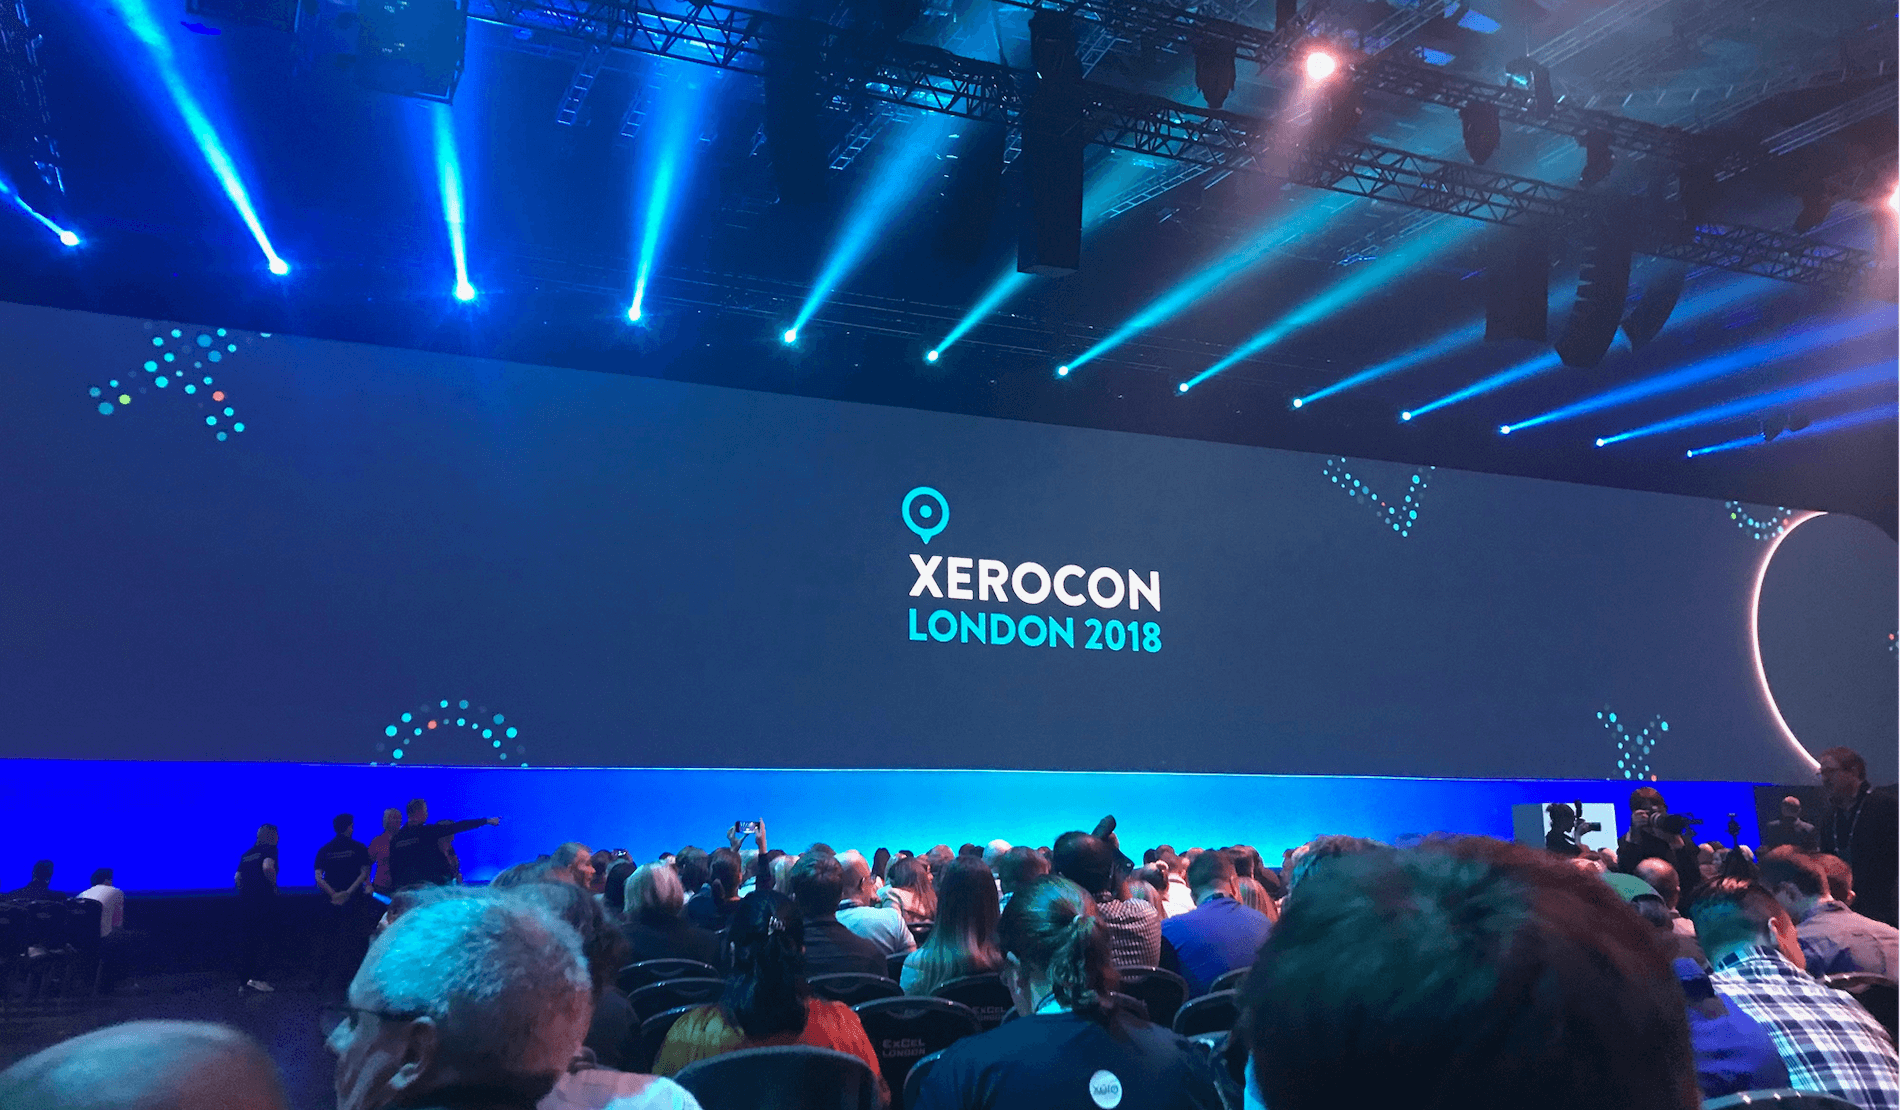 Xerocon London 2018: The Ultimate Roundup